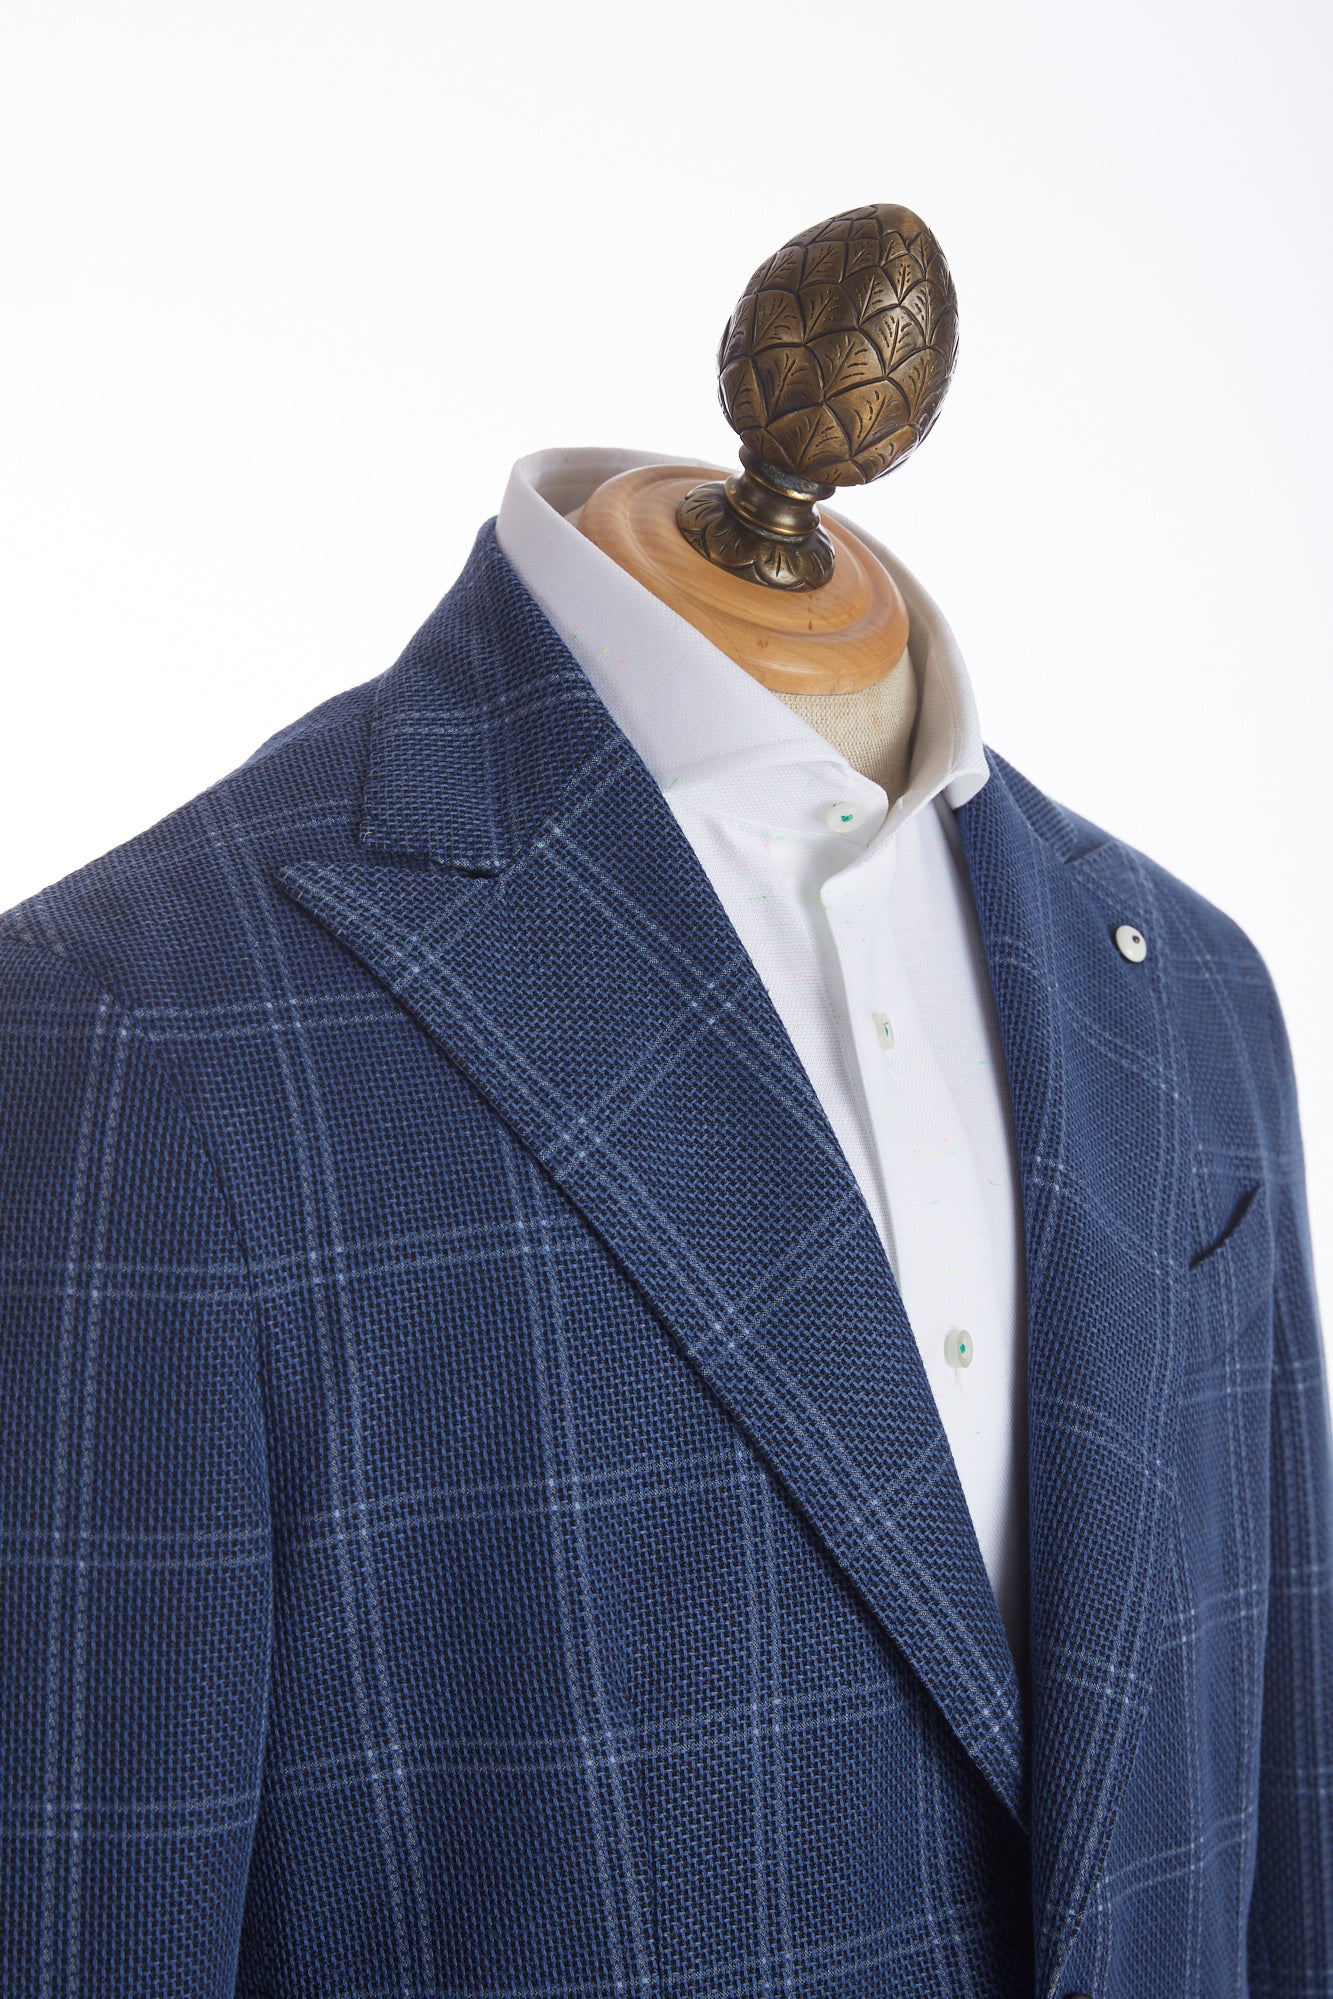 L.B.M. 1911 Blue Windowpane Flax-Cotton Peak Lapel Sport Jacket - Sport Jackets - L.B.M. 1911 - LALONDE's